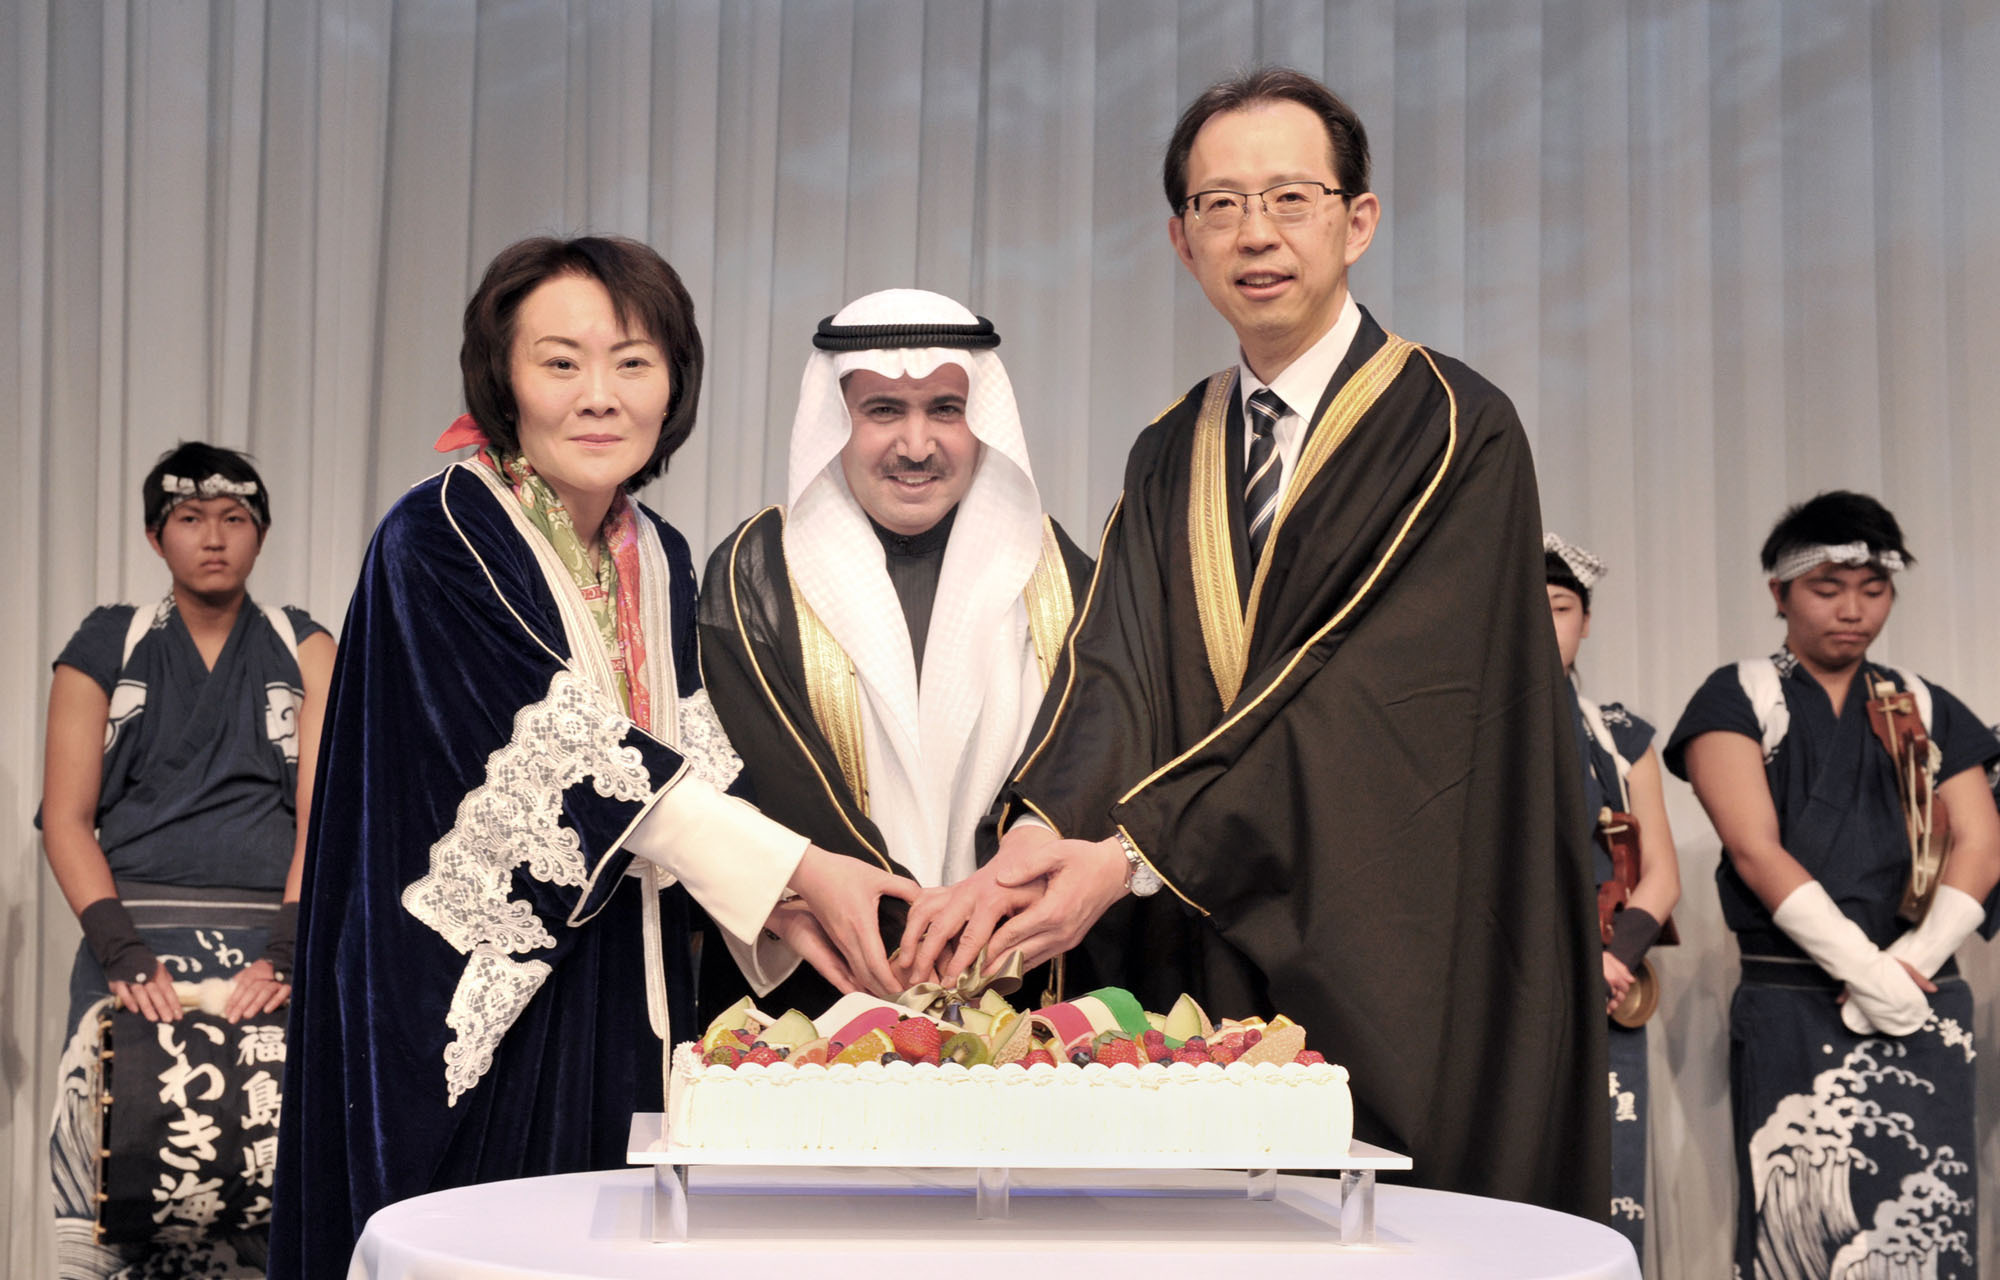 Kuwait Ambassador Abdul Rahman Humood Al-Otaibi (center) cuts a cake with Parliamentary Vice-Minister for Foreign Affairs Miki Yamada (left) and Fukushima Prefecture Gov. Masao Uchibori, during a reception to celebrate the country's 55th National Day and the 25th Anniversary of the Liberation of the State of Kuwait at the Palace Hotel, in Tokyo on Feb. 22. | YOSHIAKI MIURA